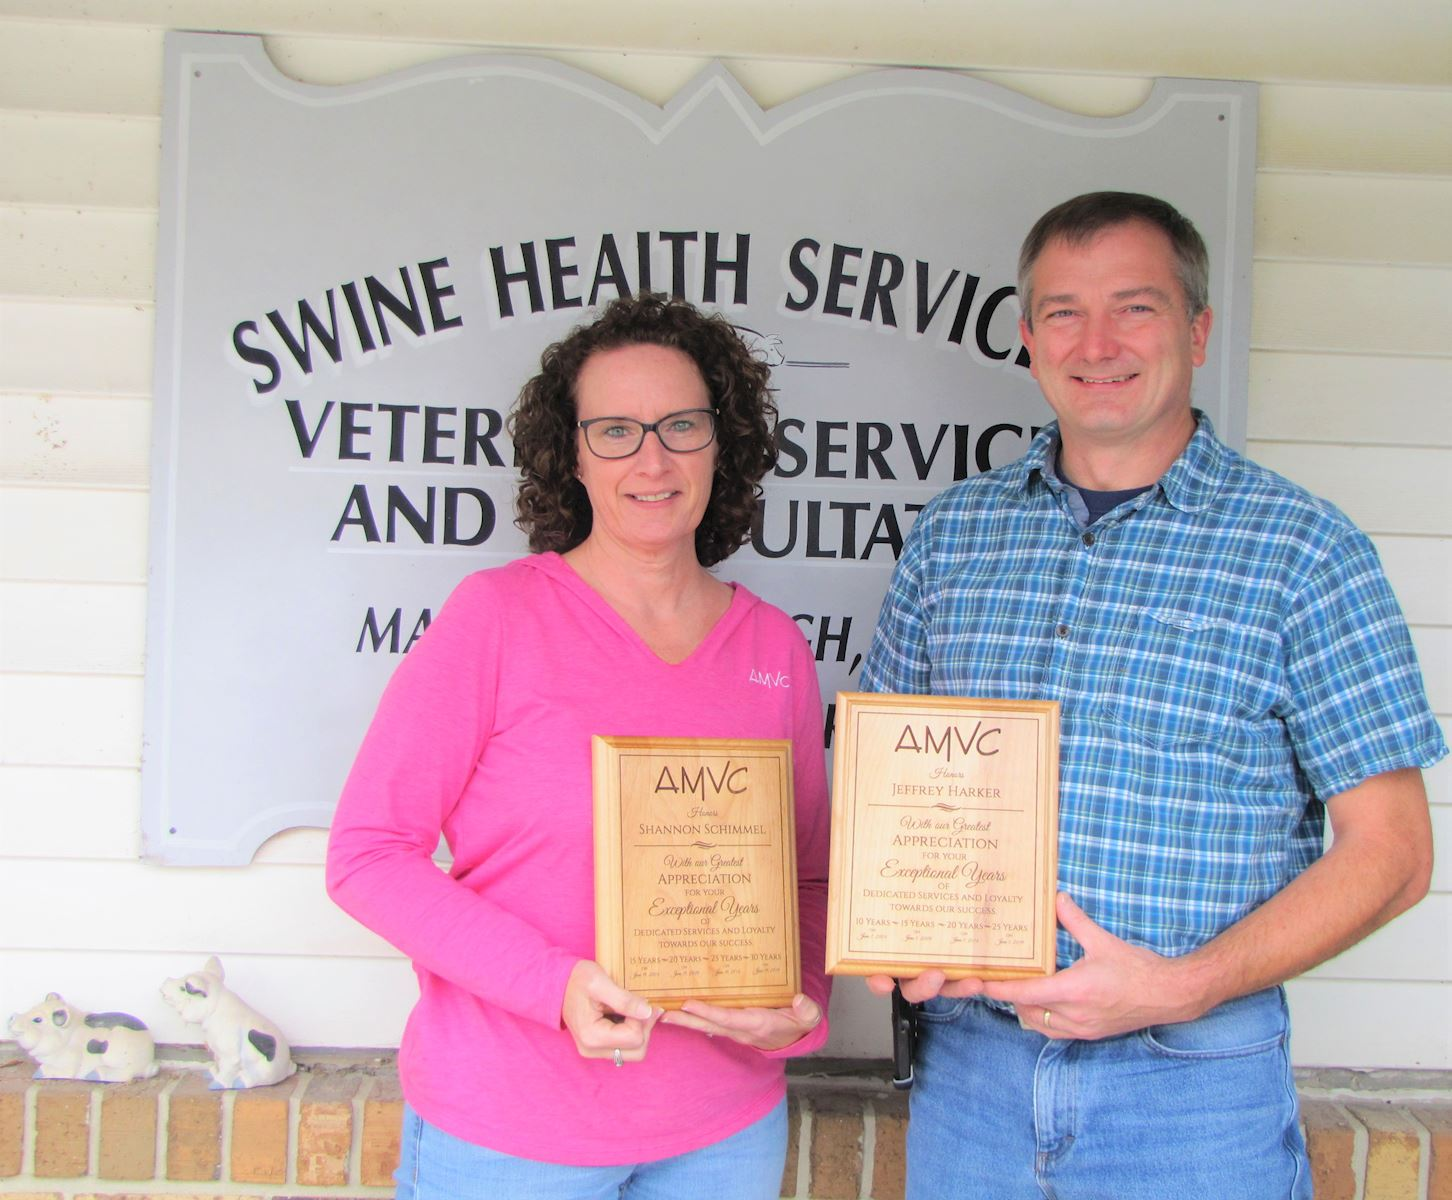 AMVC Swine Health Services recognizes employees' accomplishments